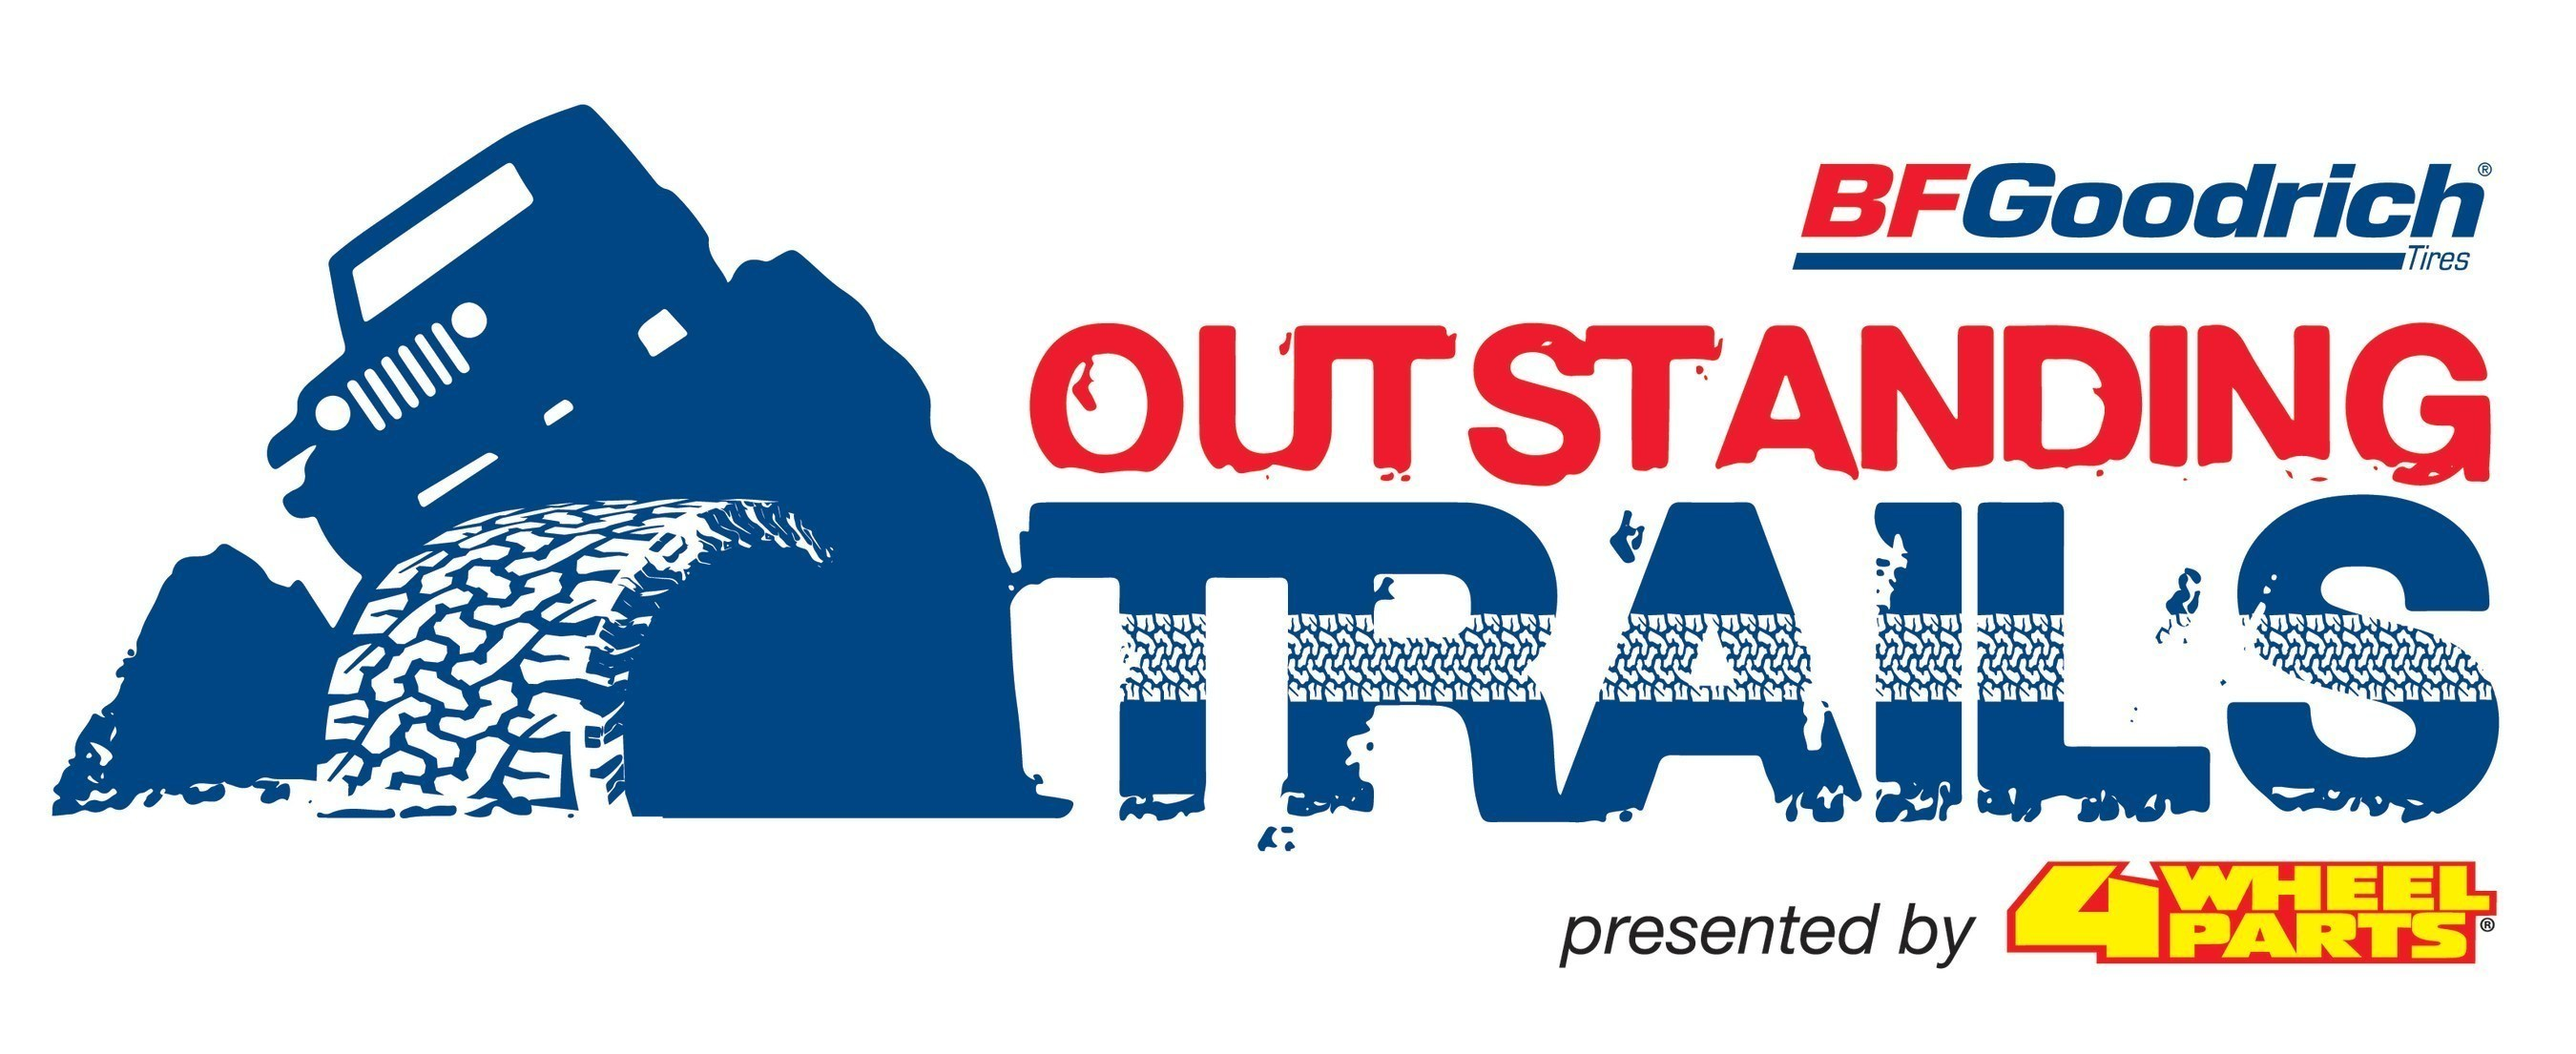 BFGoodrich Tires Outstanding Trails program has provided more than $140,000 in grants since 2006.